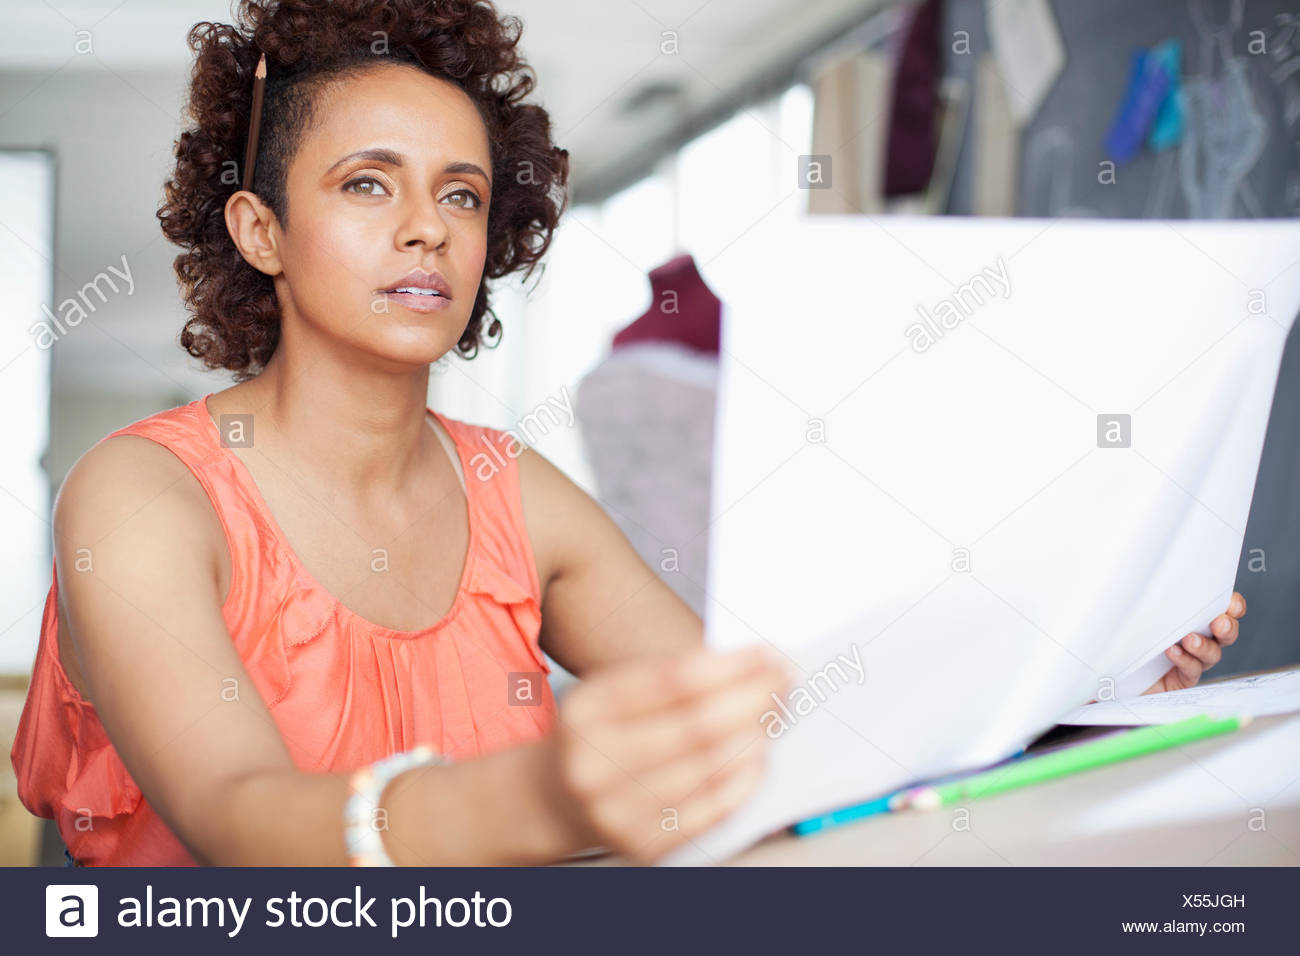 clothing designer dreaming of designs - Stock Image